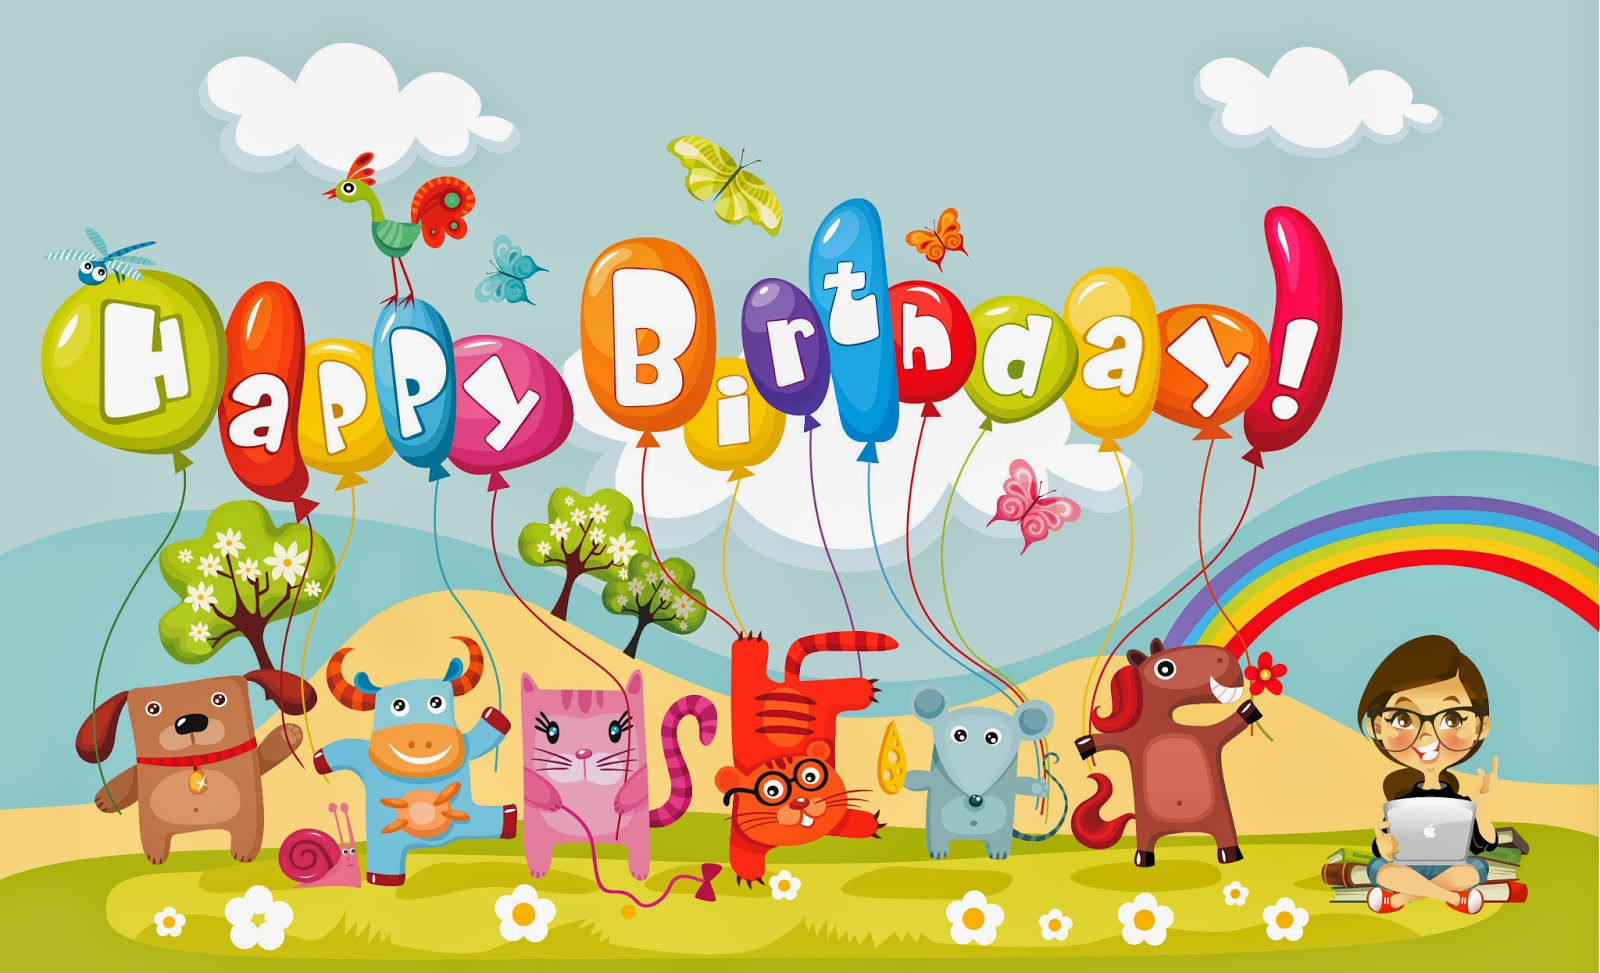 Happy-Birthday-children-celebration-photo-wallpaper-2048x1246.jpg